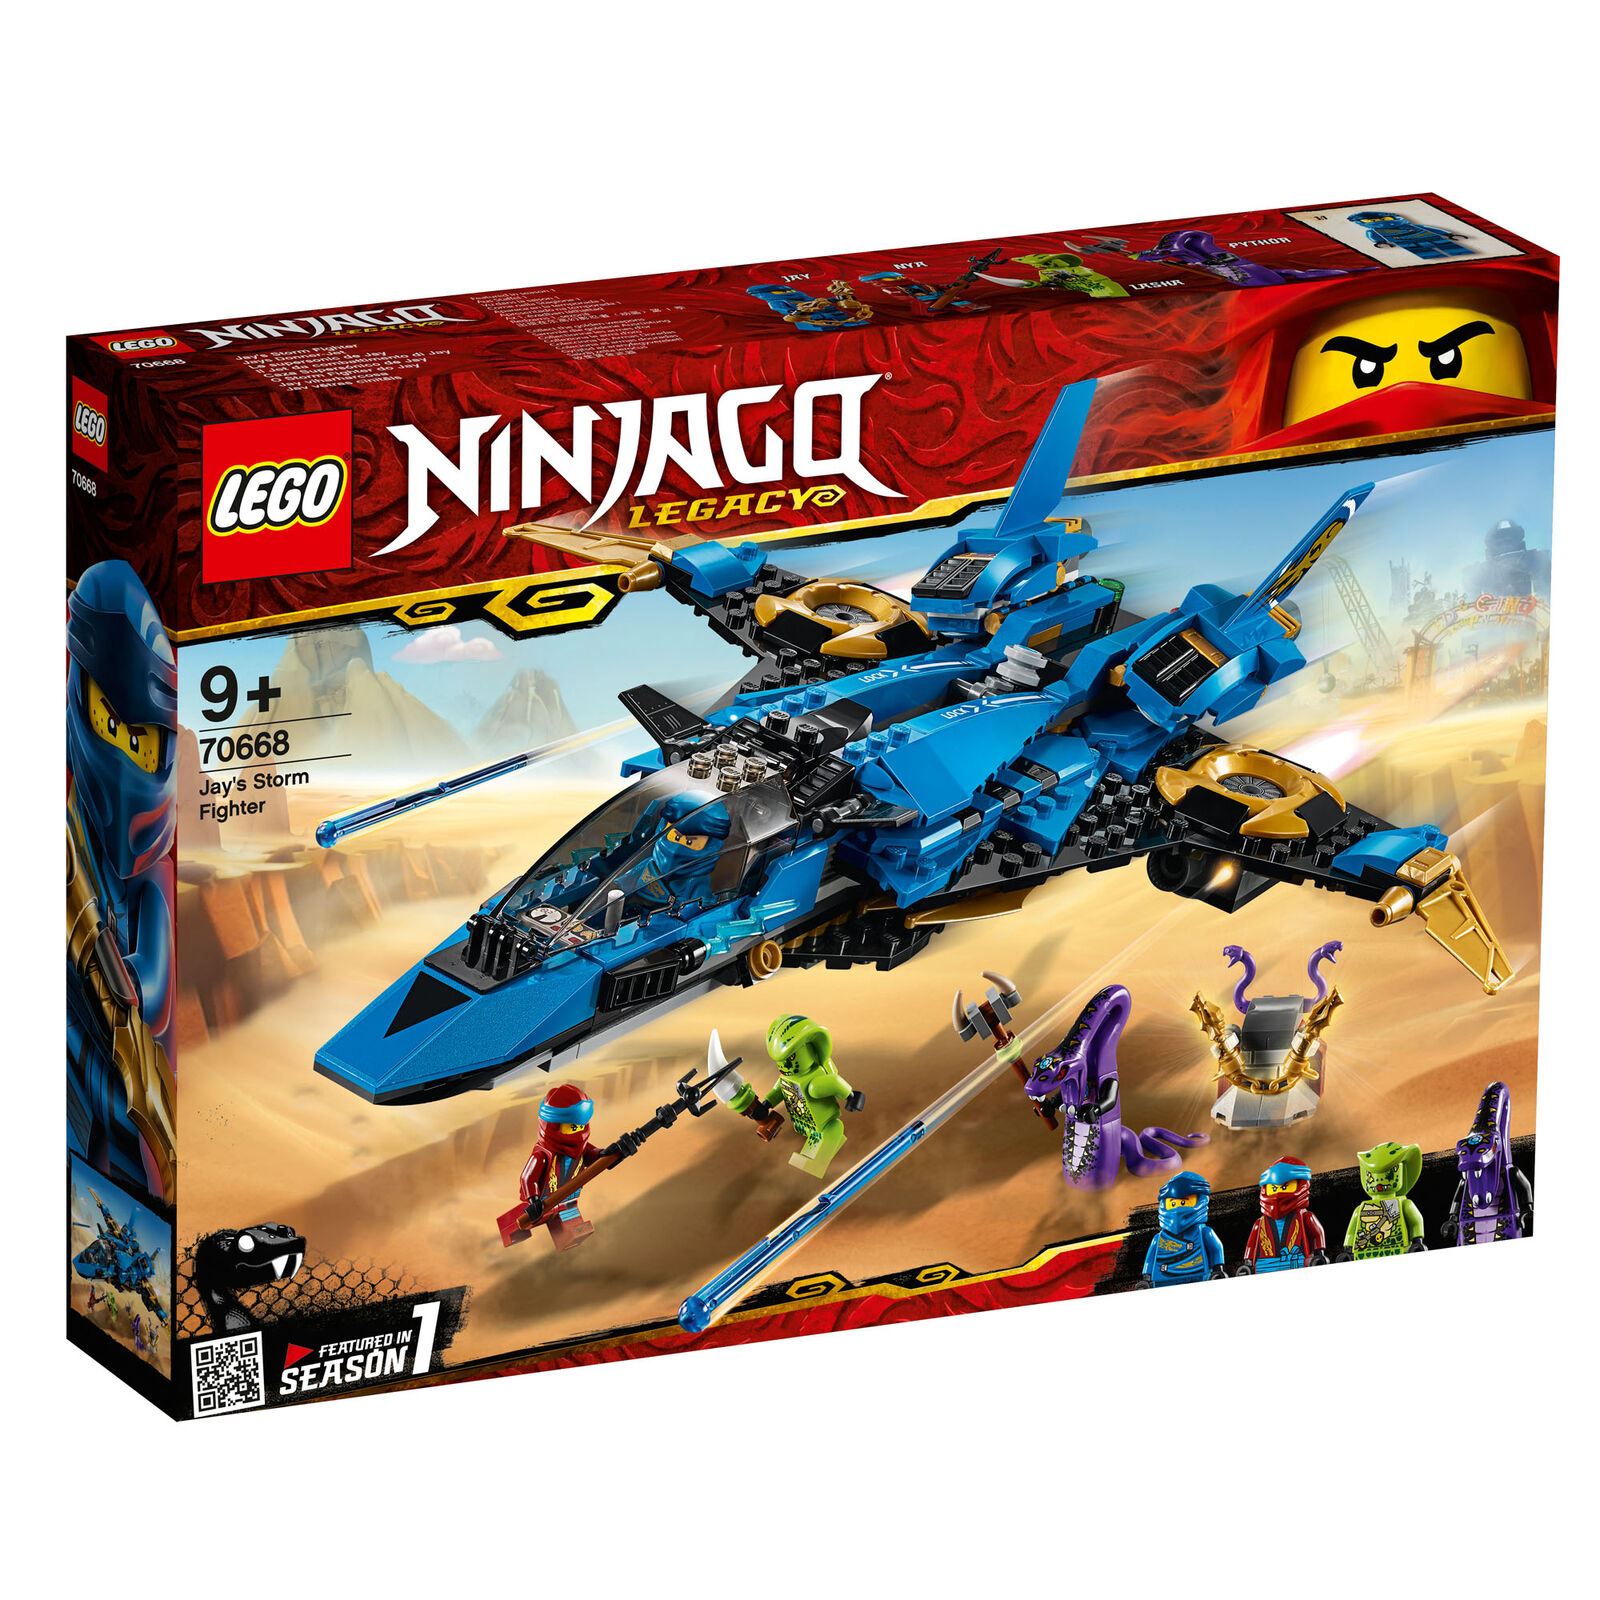 70668 LEGO Ninjago Jay's Storm Fighter 490 Pieces Age 9+ New Release for 2019